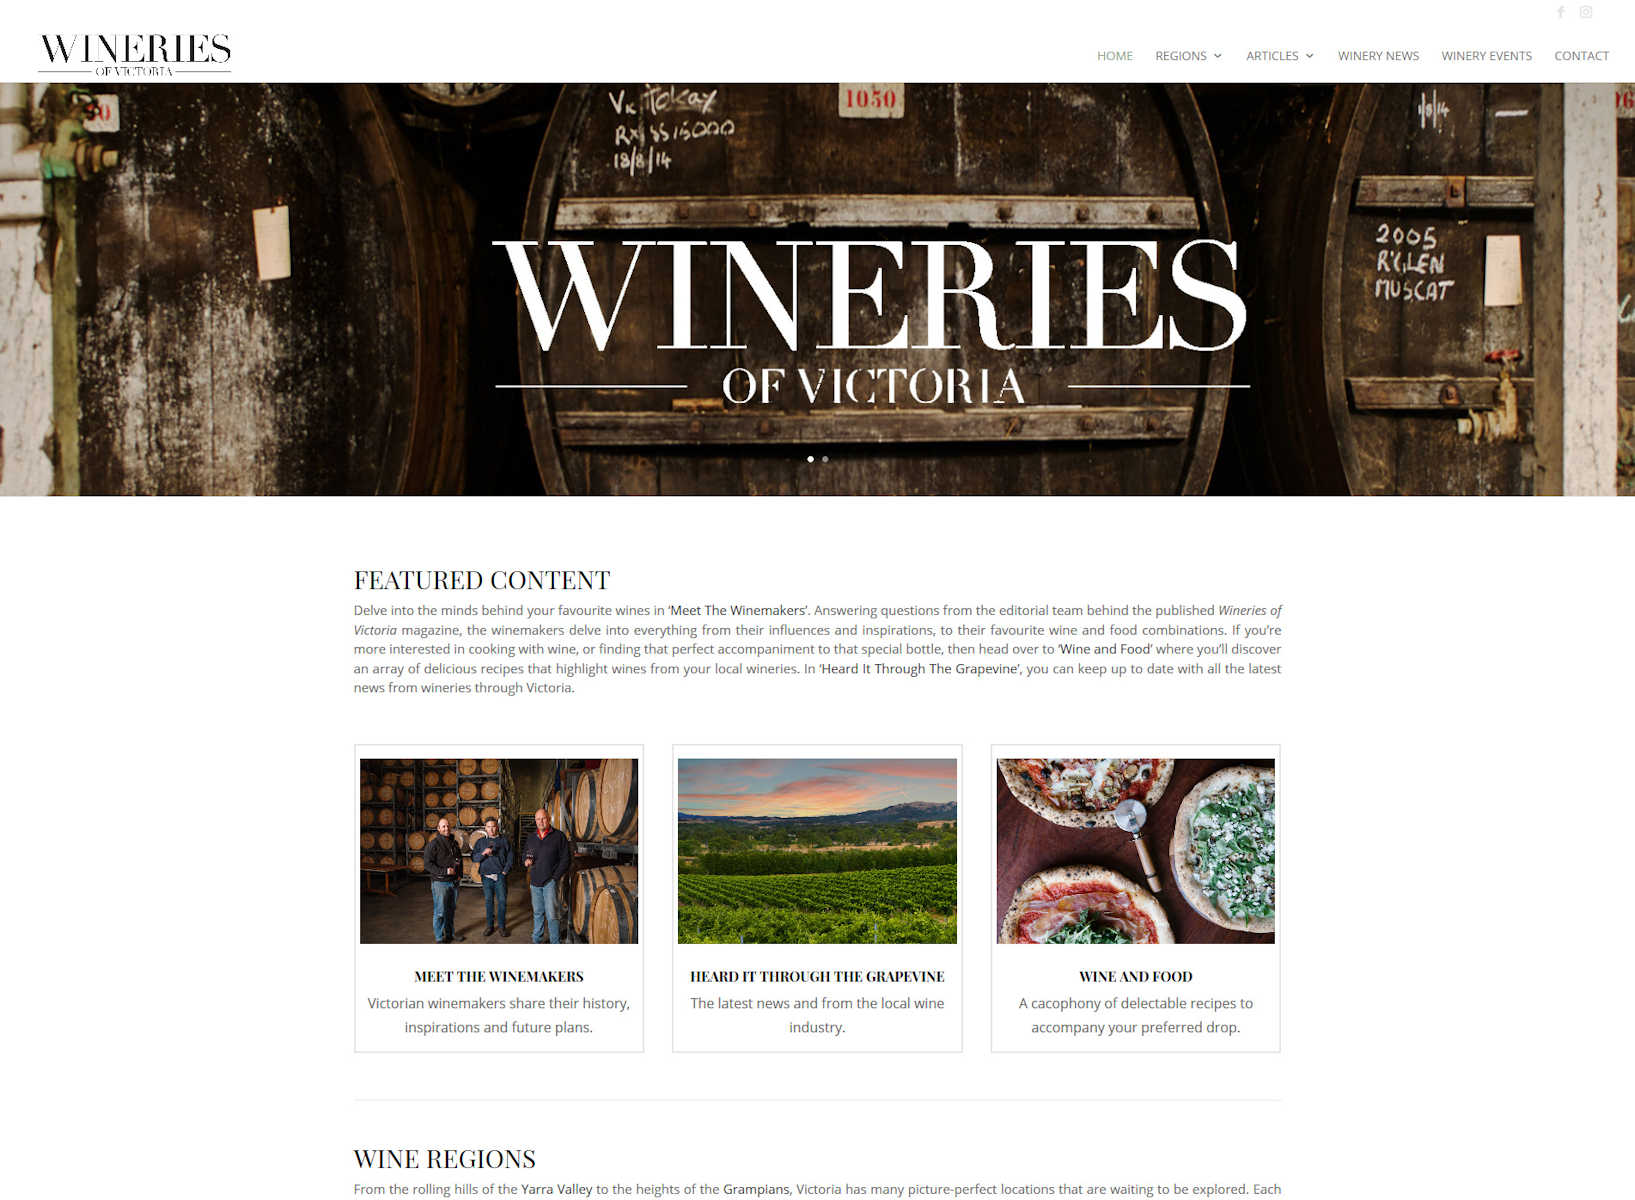 Wineries of Victoria